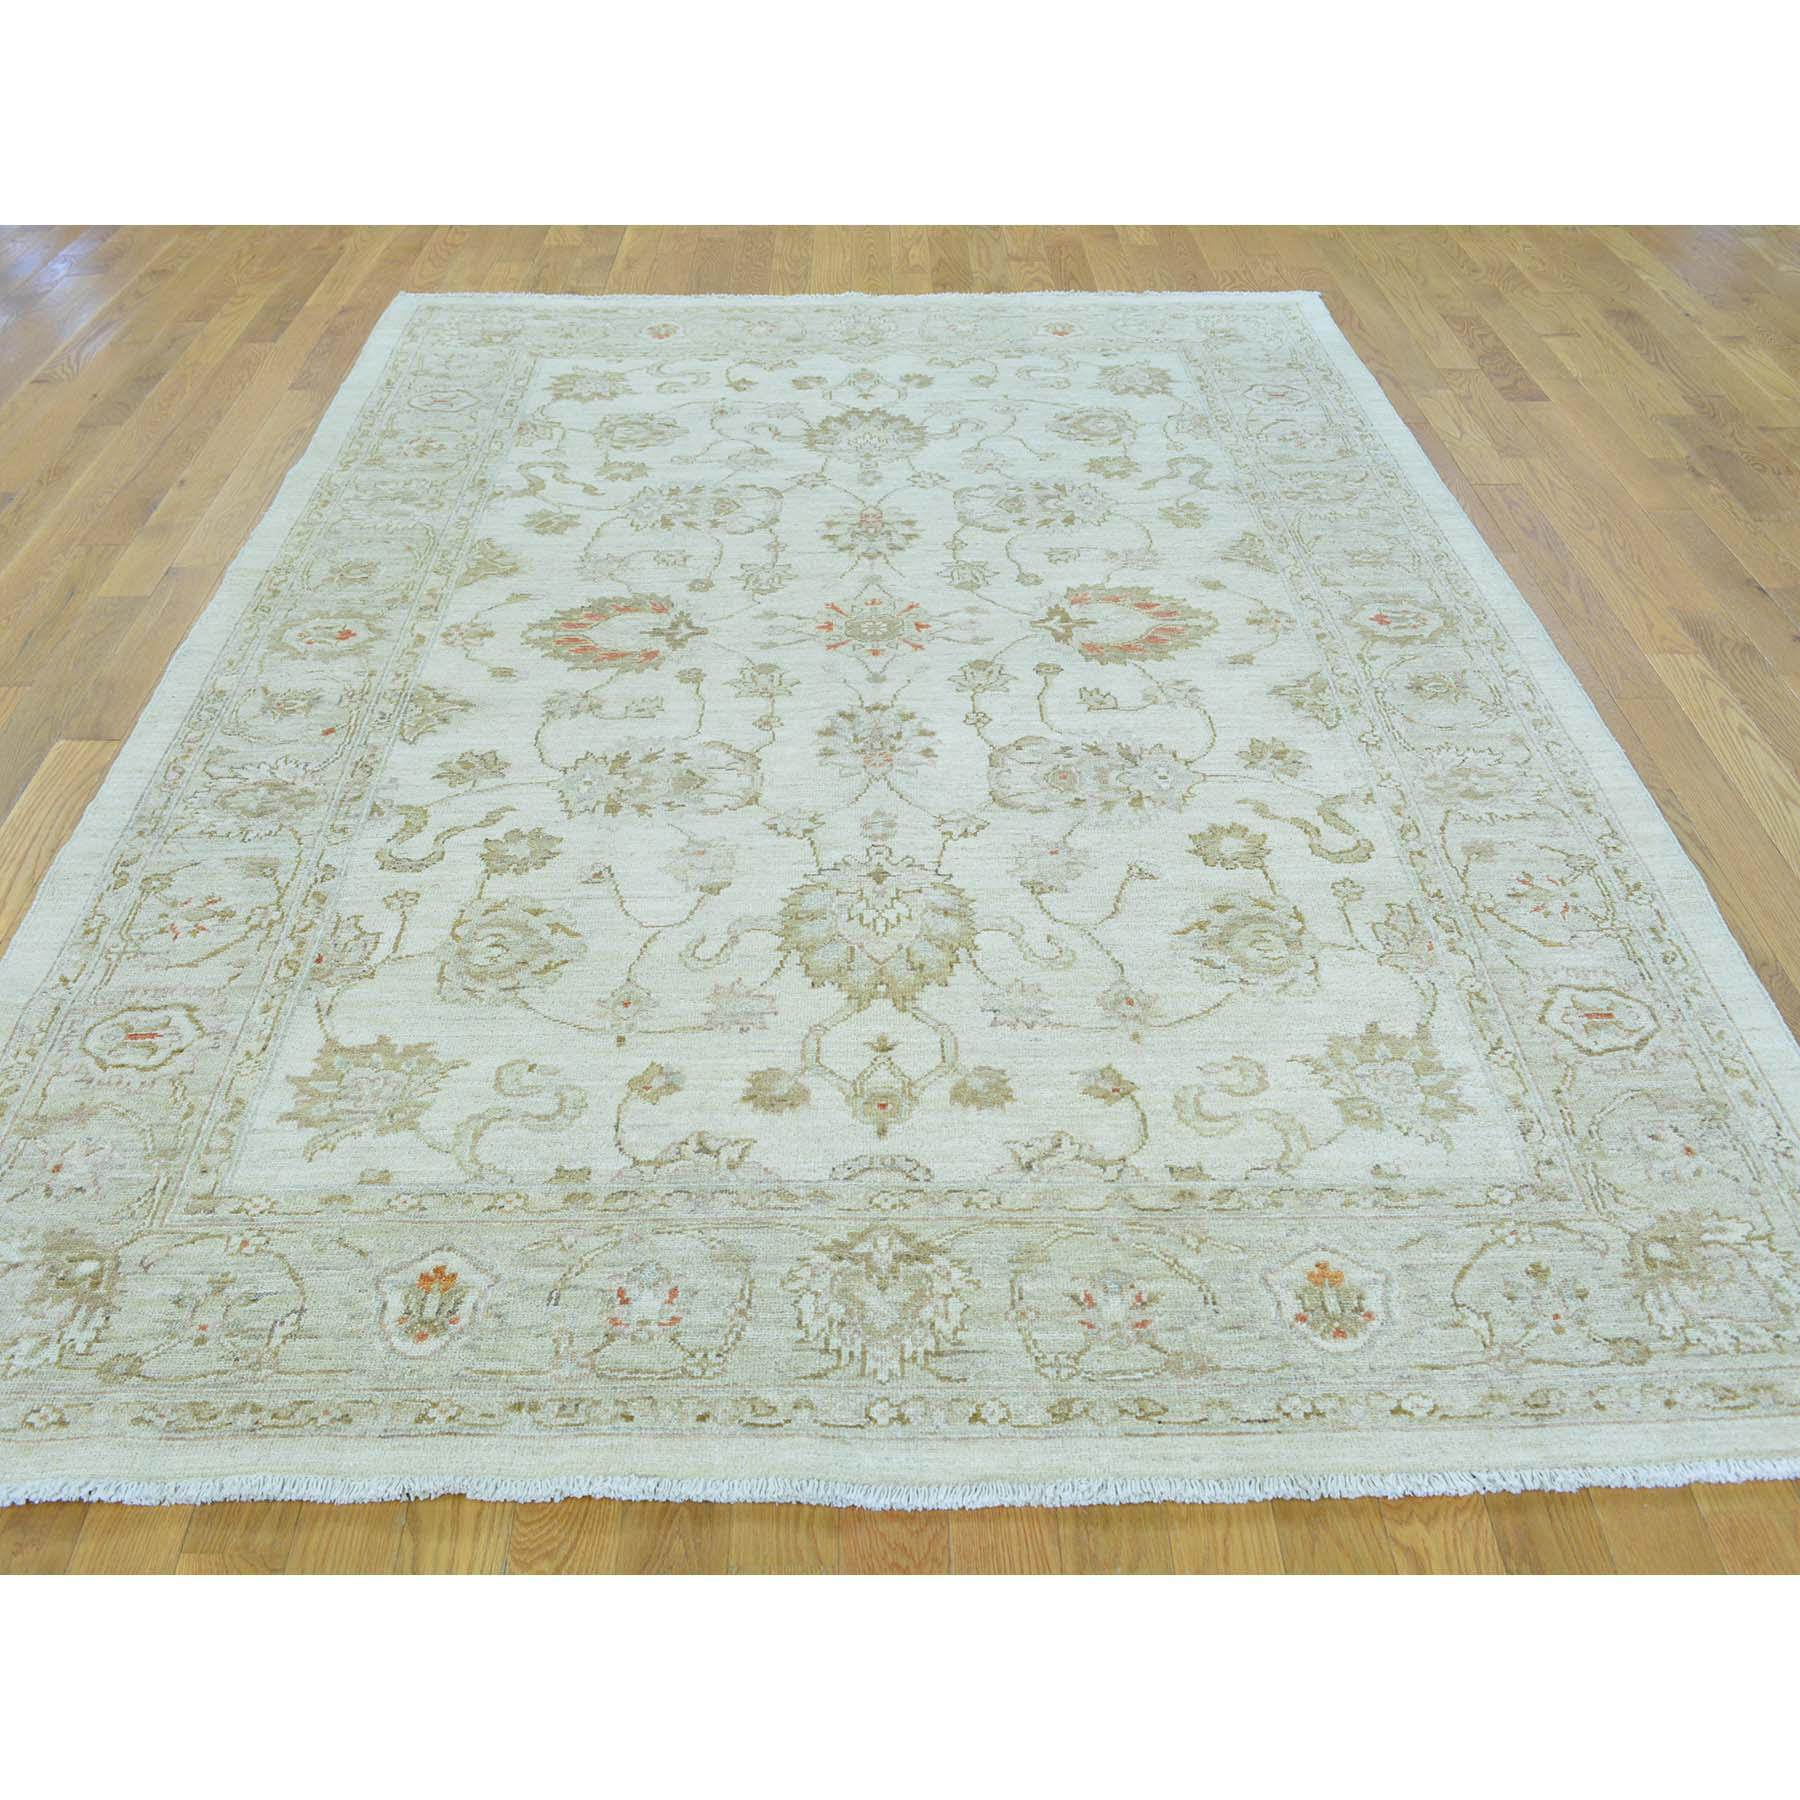 6-x8-9  Oushak Ivory Pure Wool White Wash Hand Knotted Oriental Rug